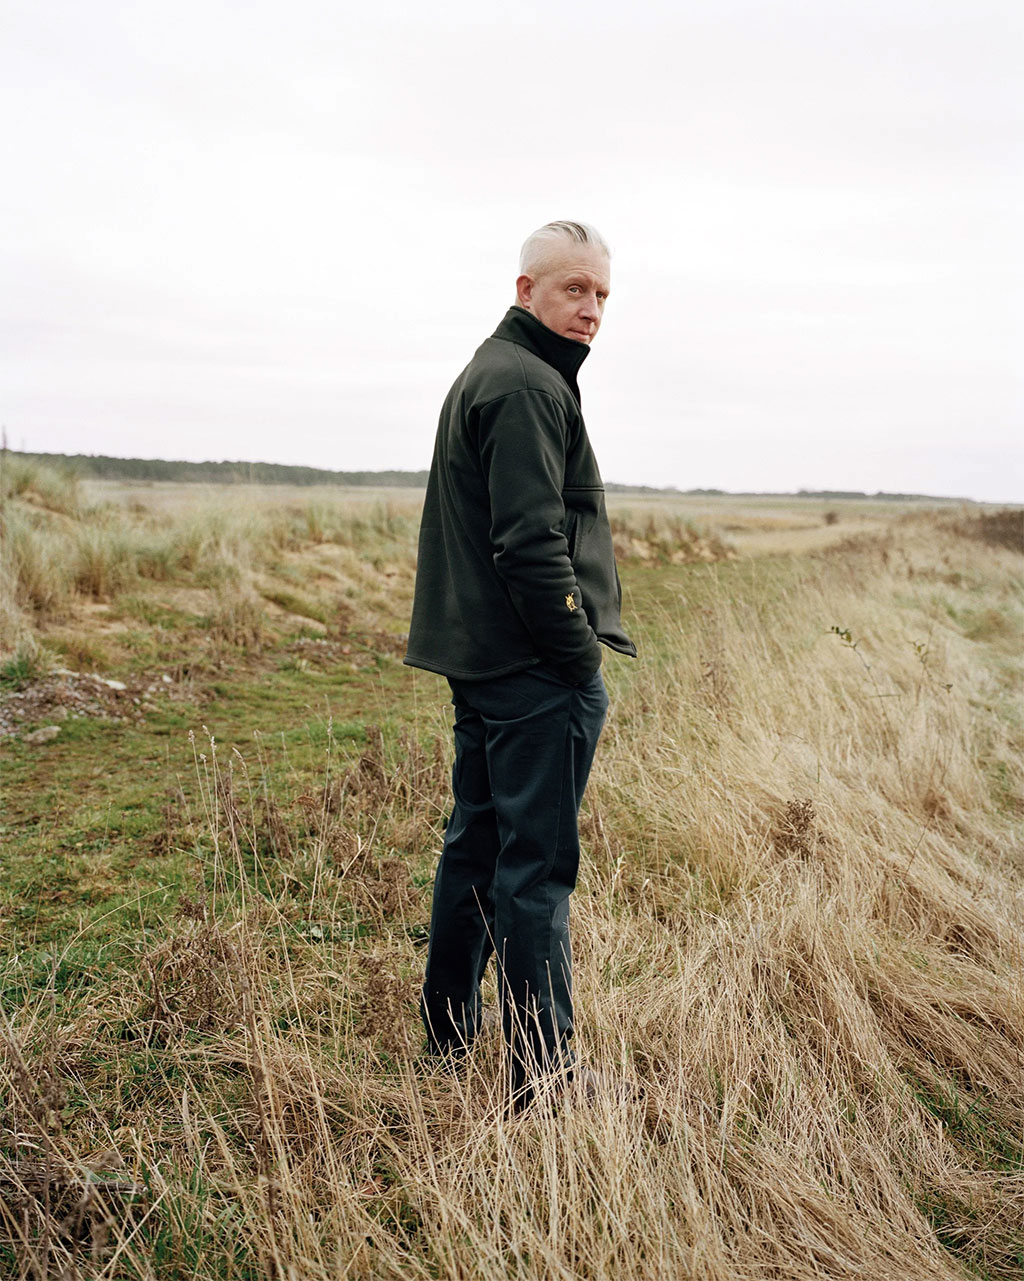 Between 1990 and 2010, the area of crops treated with pesticides in the U.K. increased by fifty per cent. The environmental damage has only recently been understood.Photograph by Siân Davey for The New Yorker